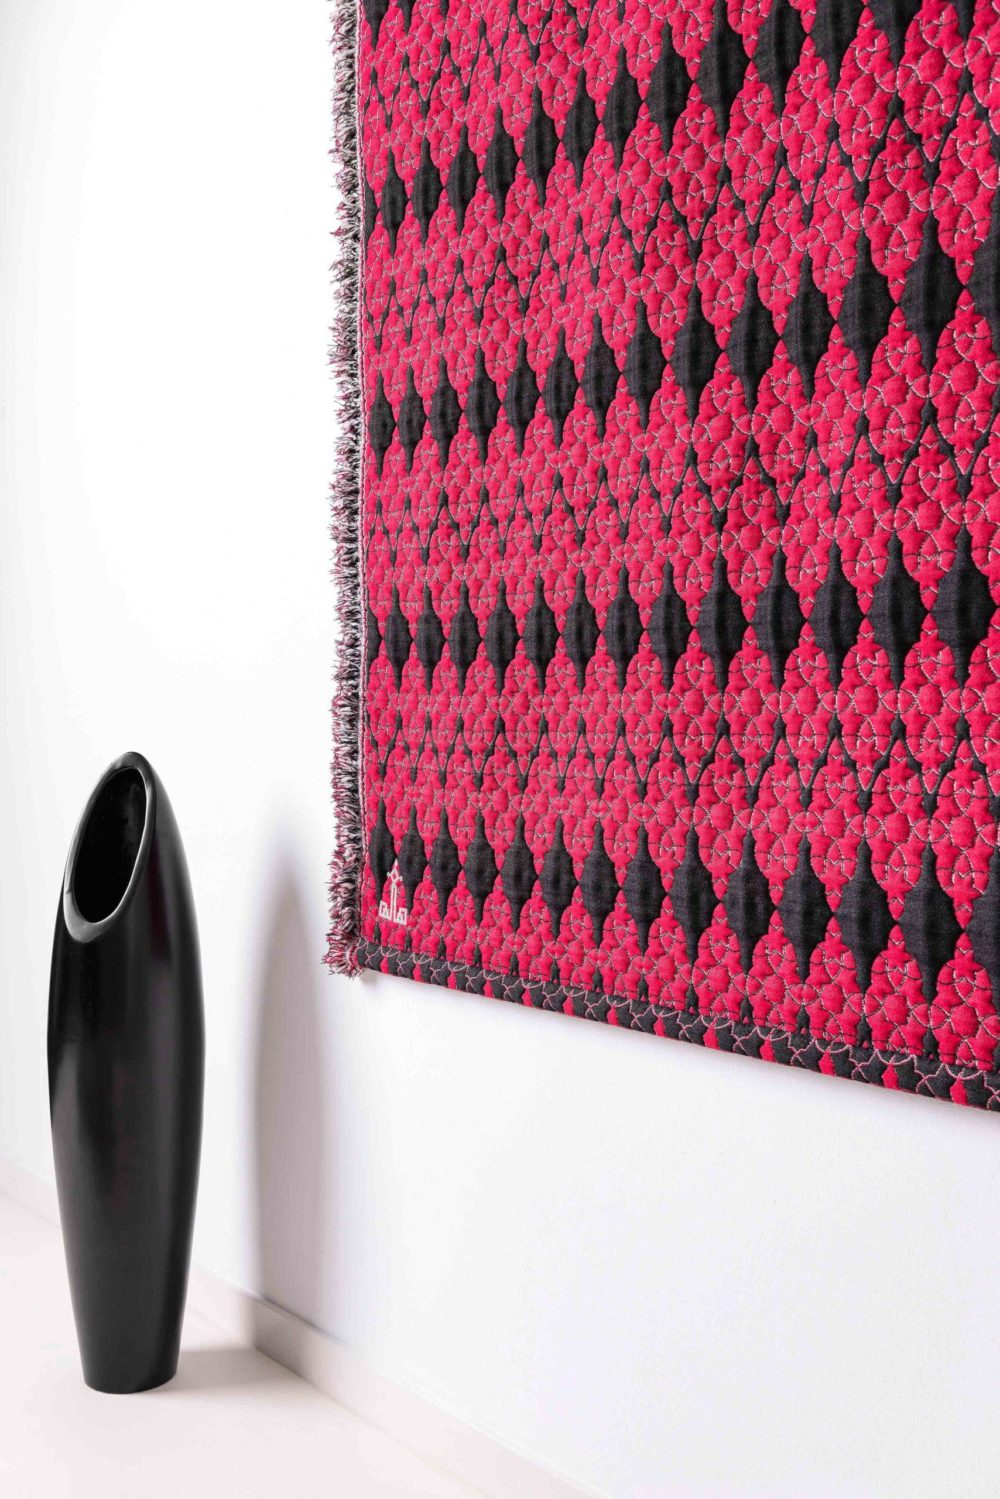 Halle Design home textile Wall hanging decor perspective red black